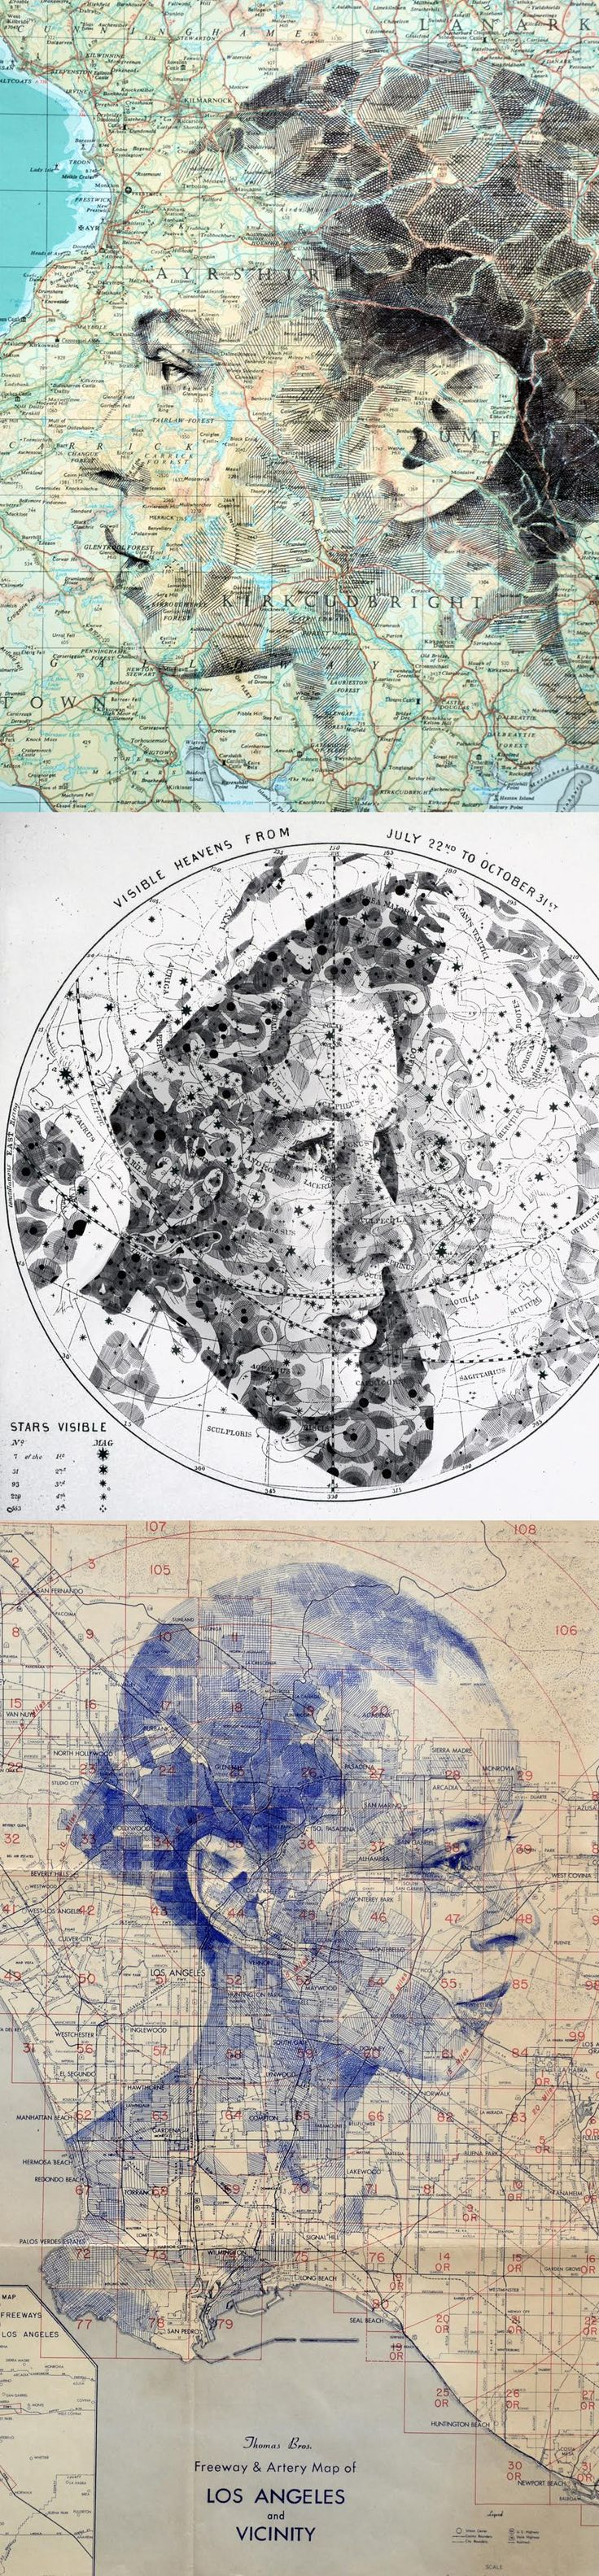 New Portraits Drawn on Maps and Star Charts by Ed Fairburn